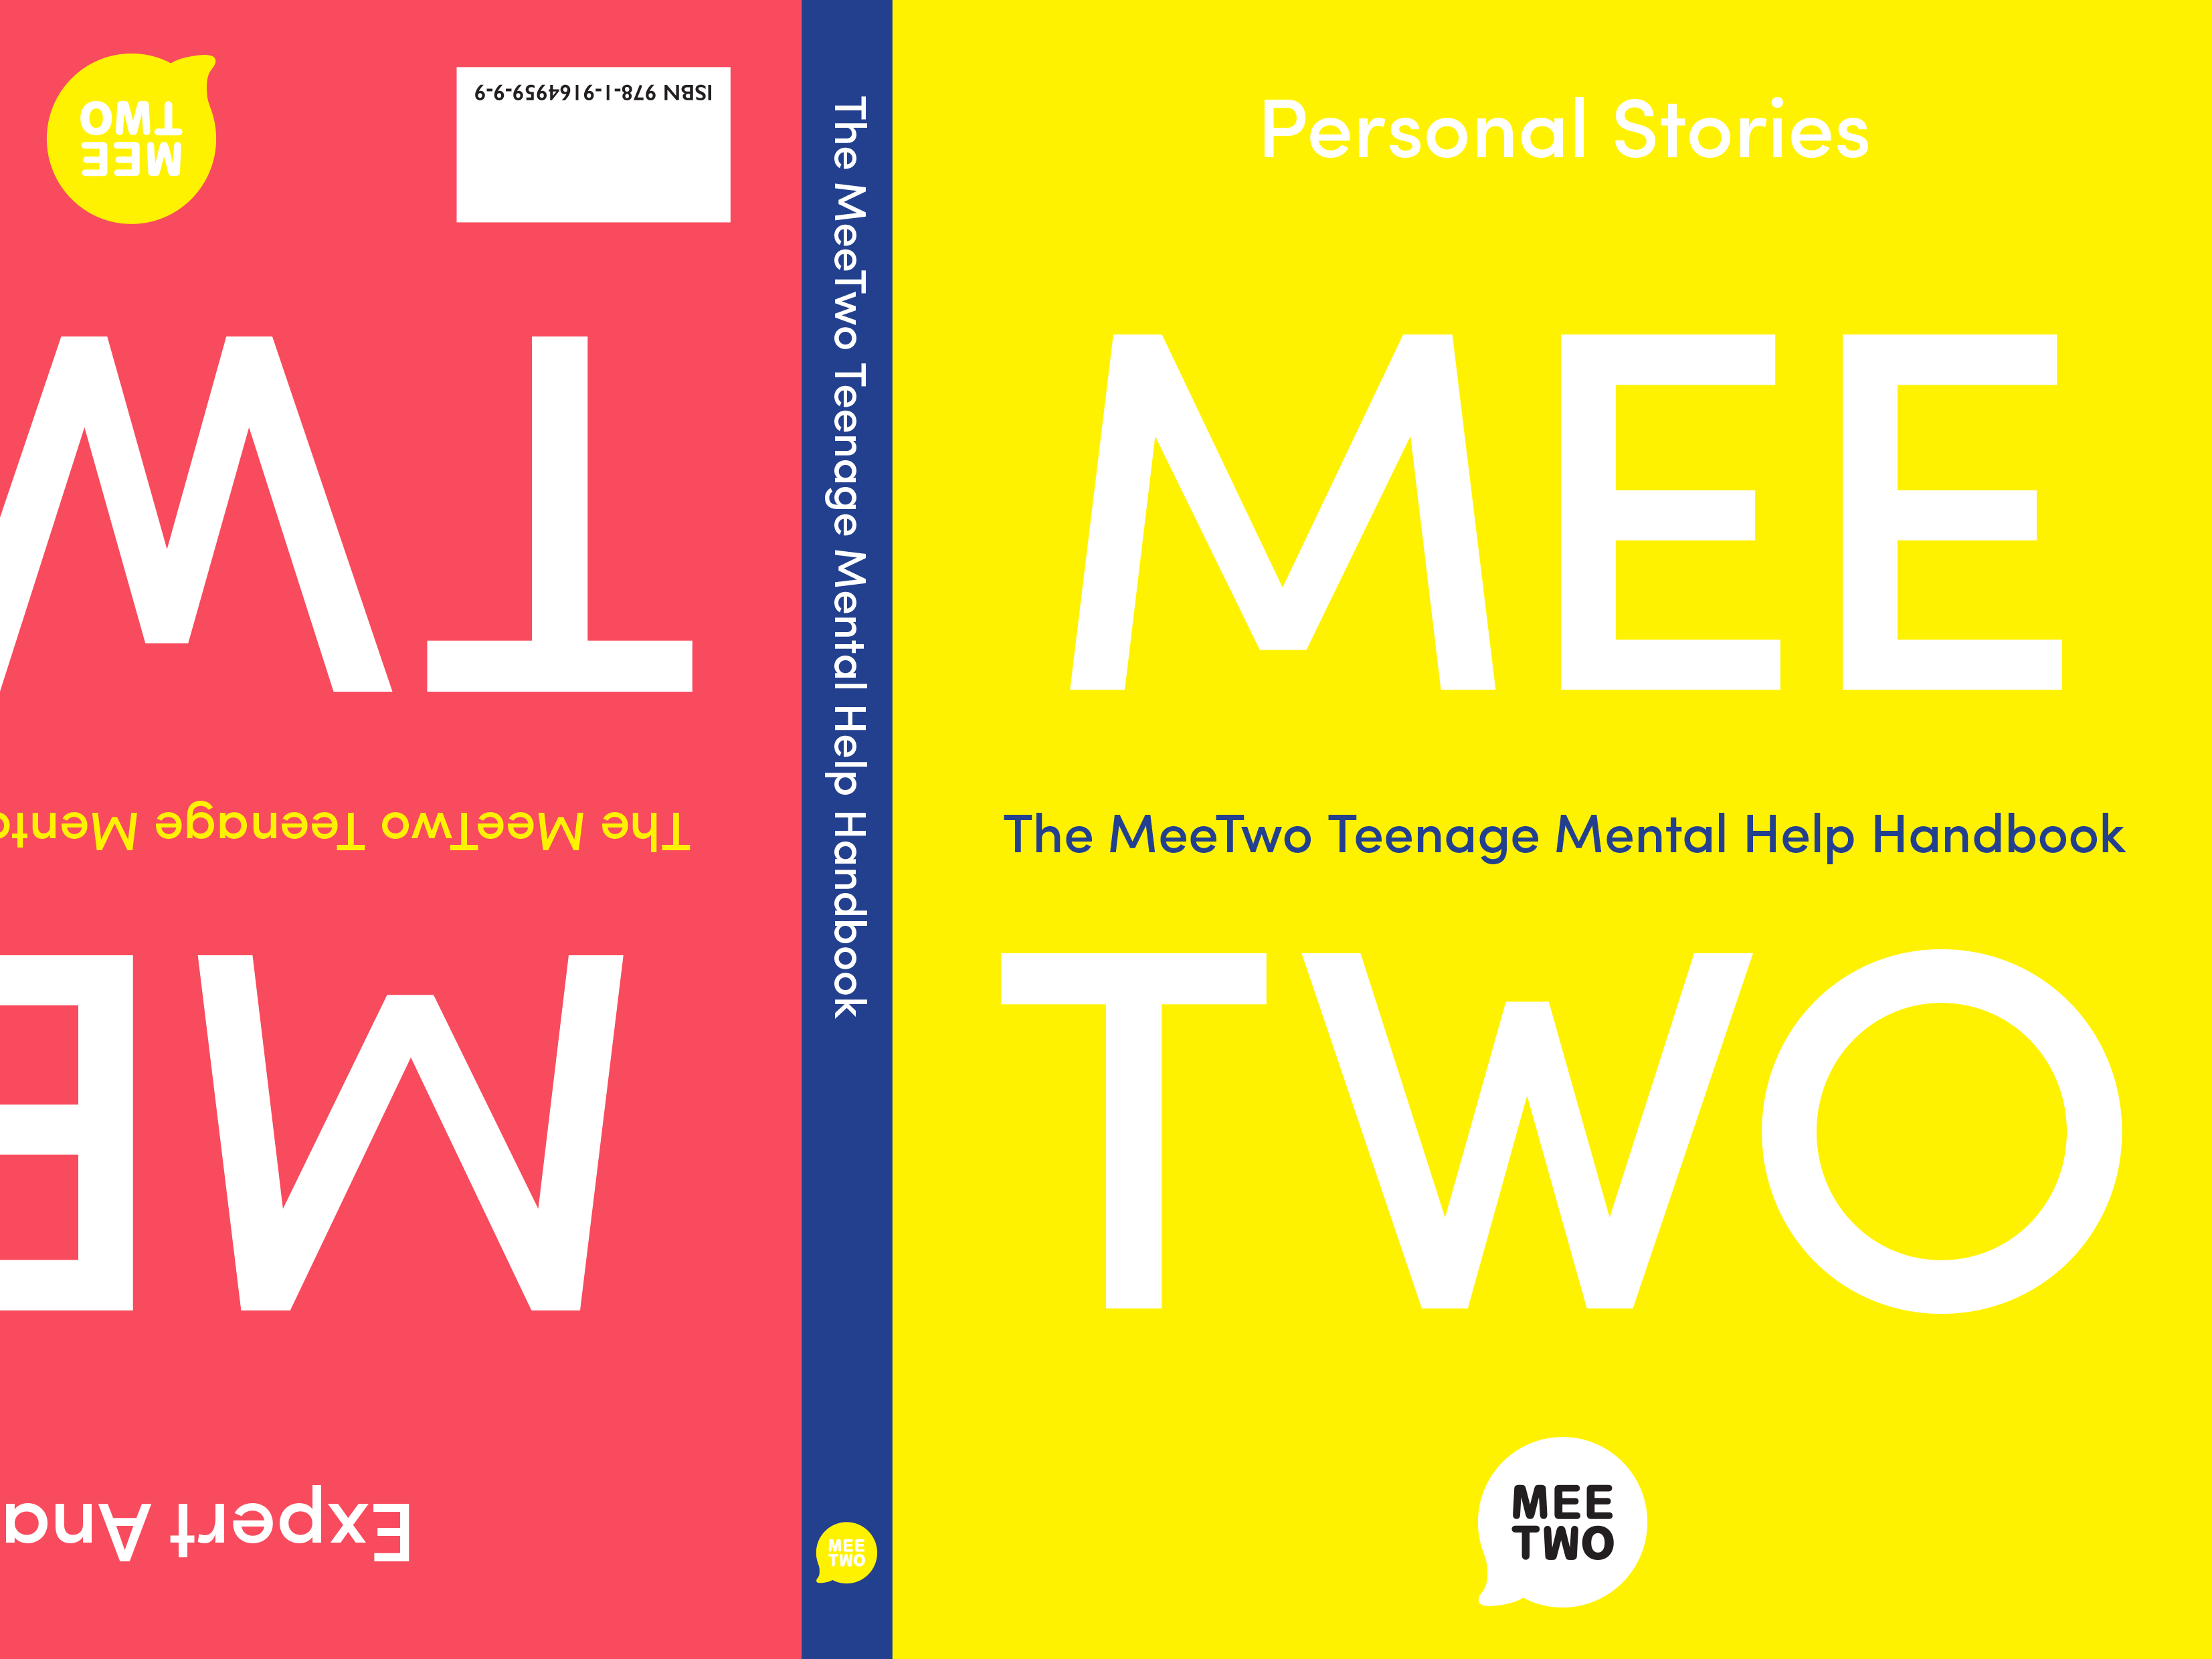 Alternative covers to the MeeTwo handbook